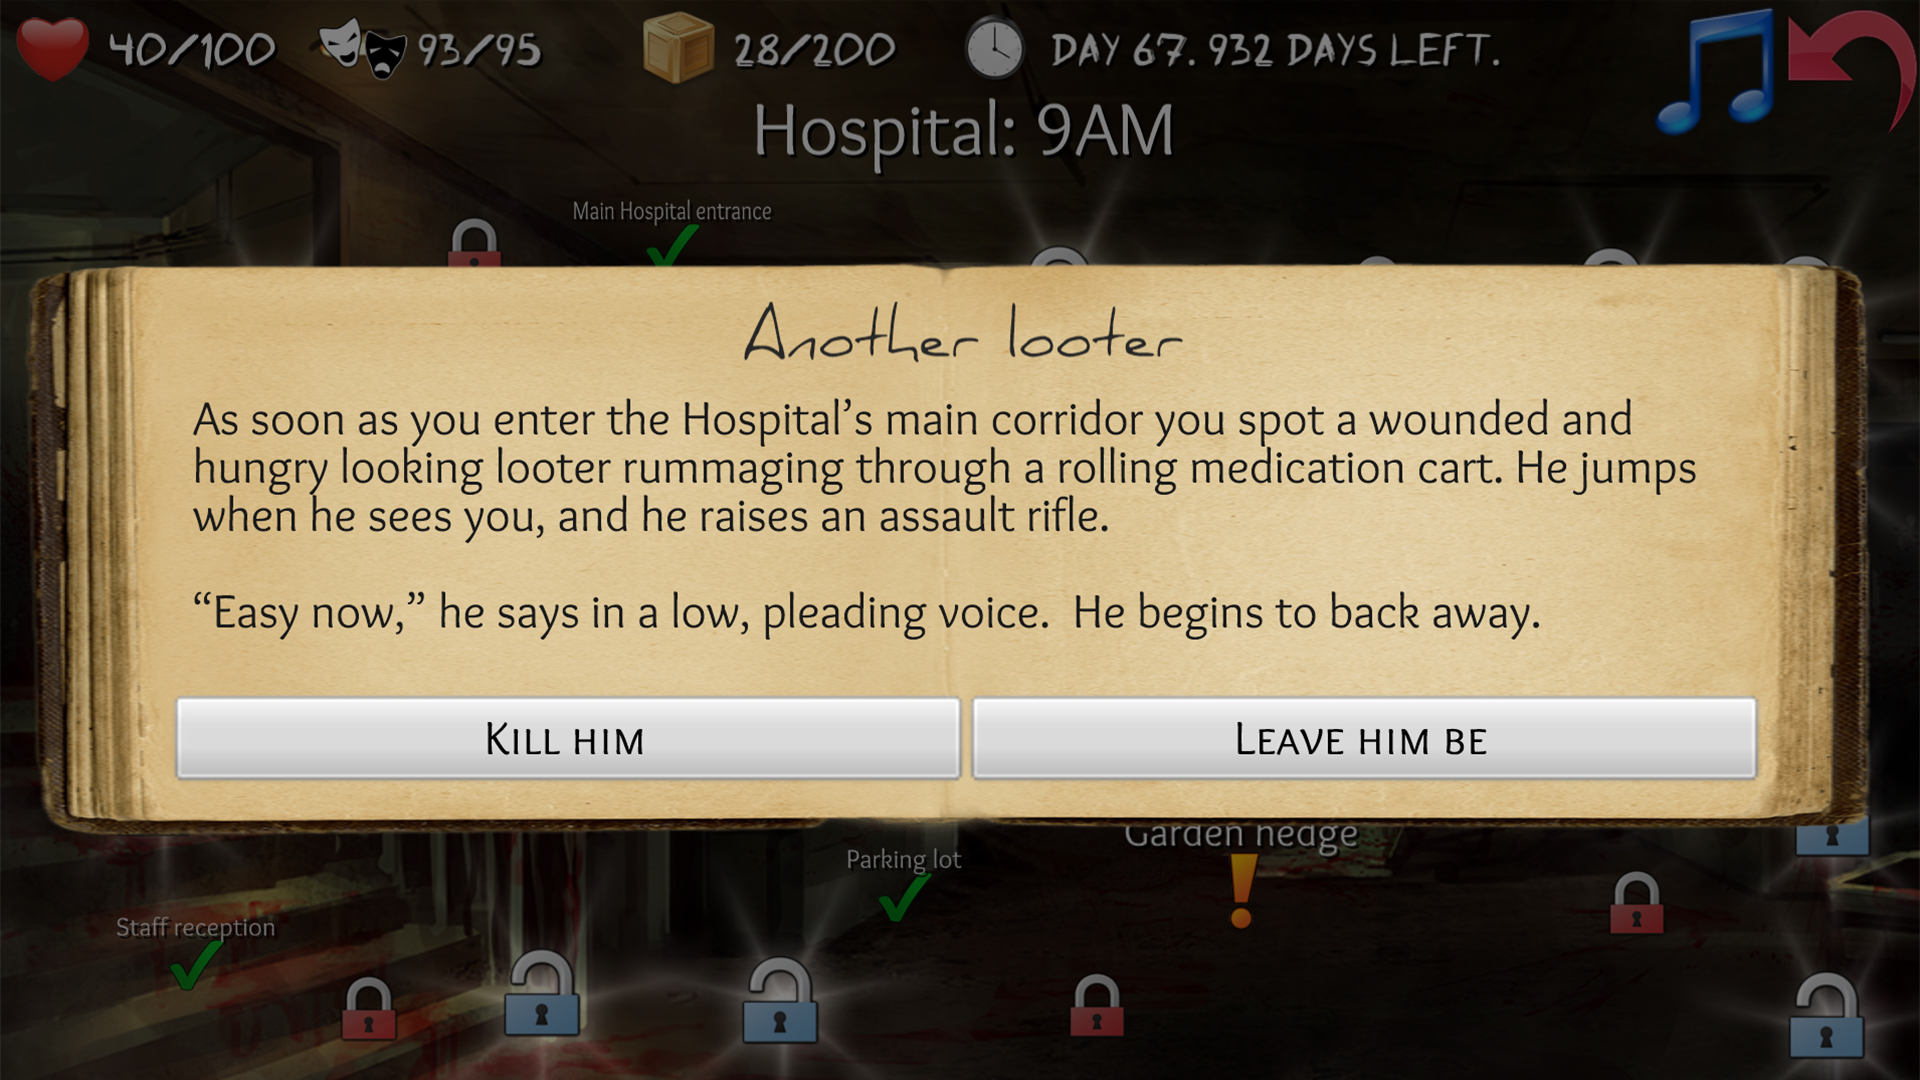 Overlive - Zombie Apocalypse Survival - An Interactive